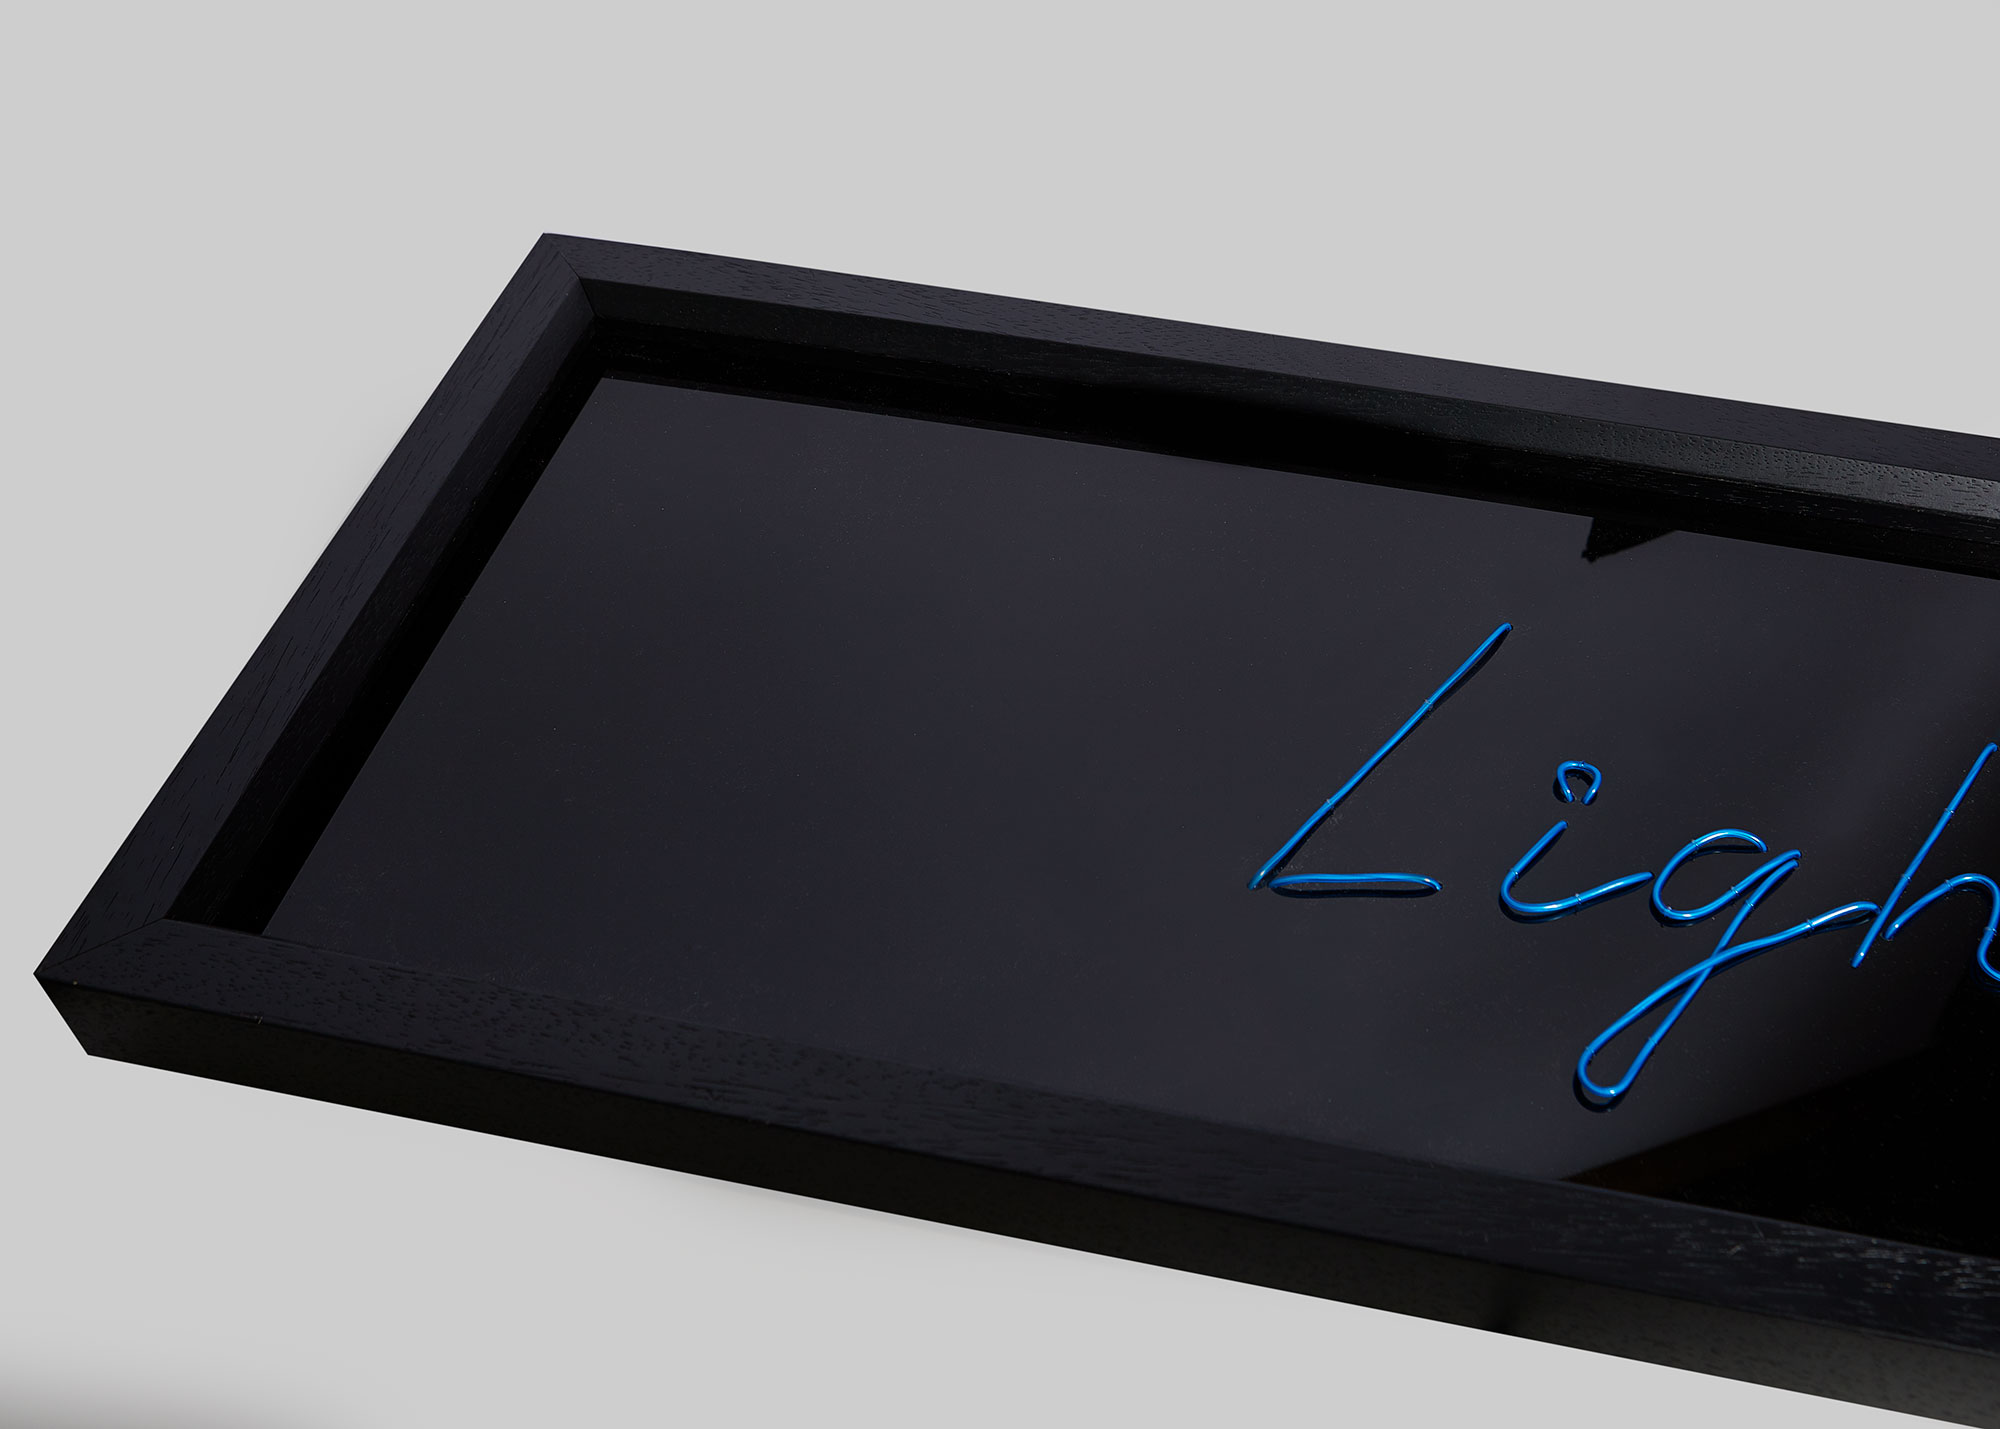 Black Perspex - High gloss black perspex with your choice of text, font and colour.